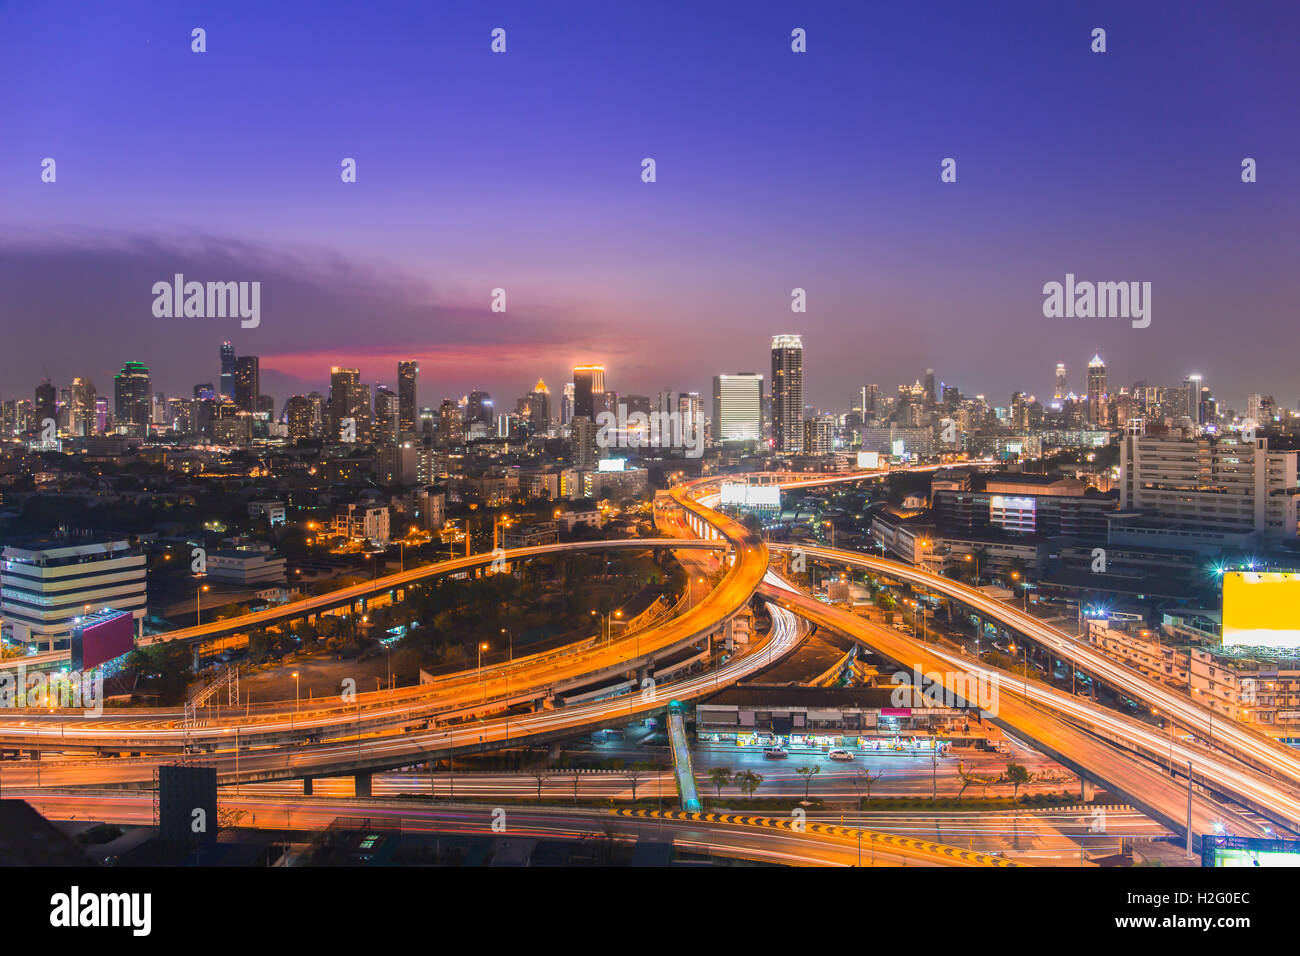 Bangkok skylines and highway traffic motion in the sunset. The View from the top, Thailand. City scape and civilization - Stock Image